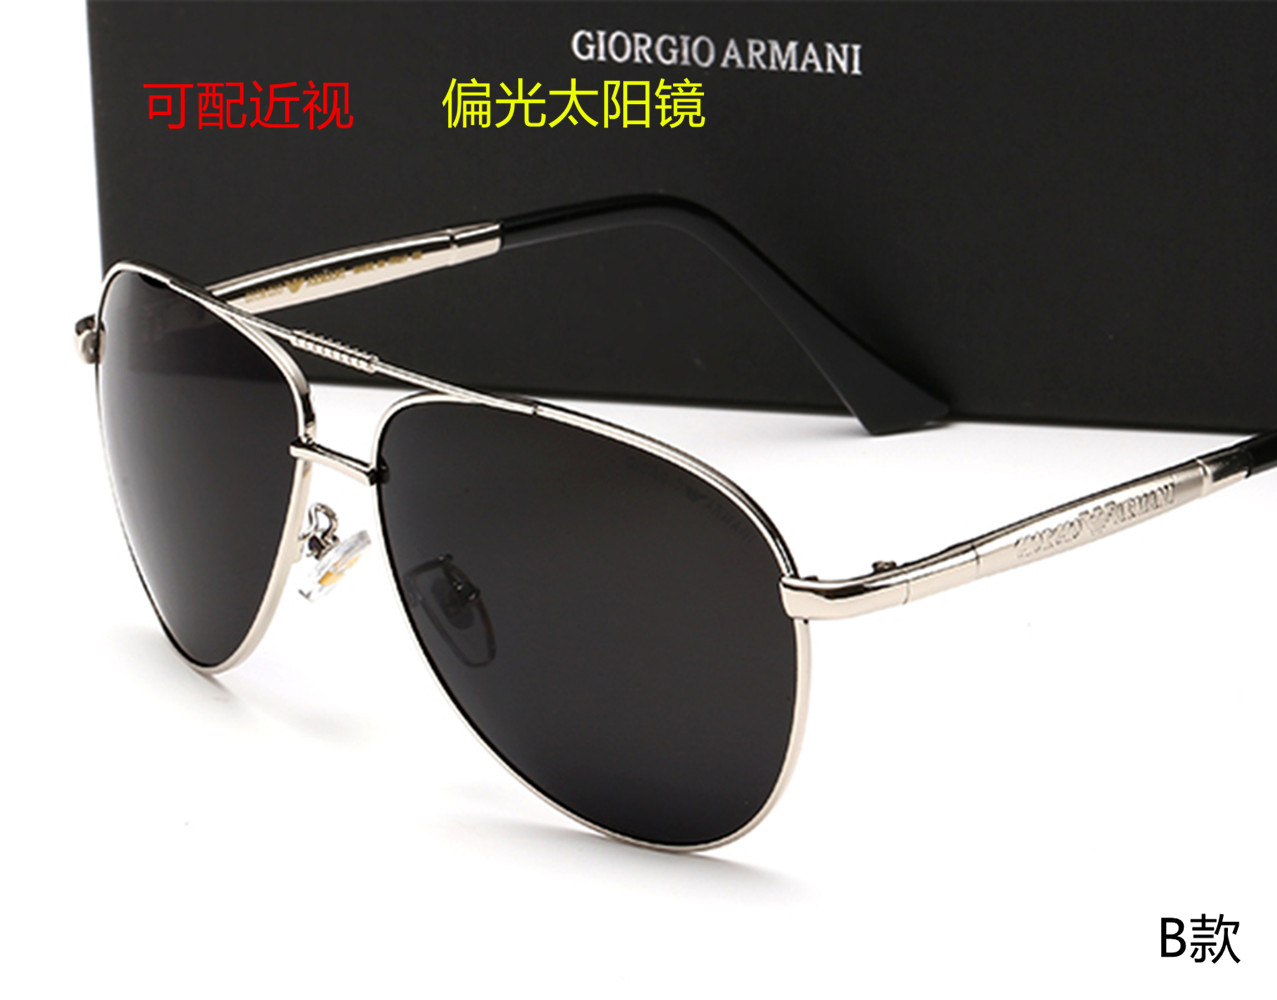 Armani sunglasses polarized lenses male frog mirror sunglasses mirror drive driver driving glasses box myopia male